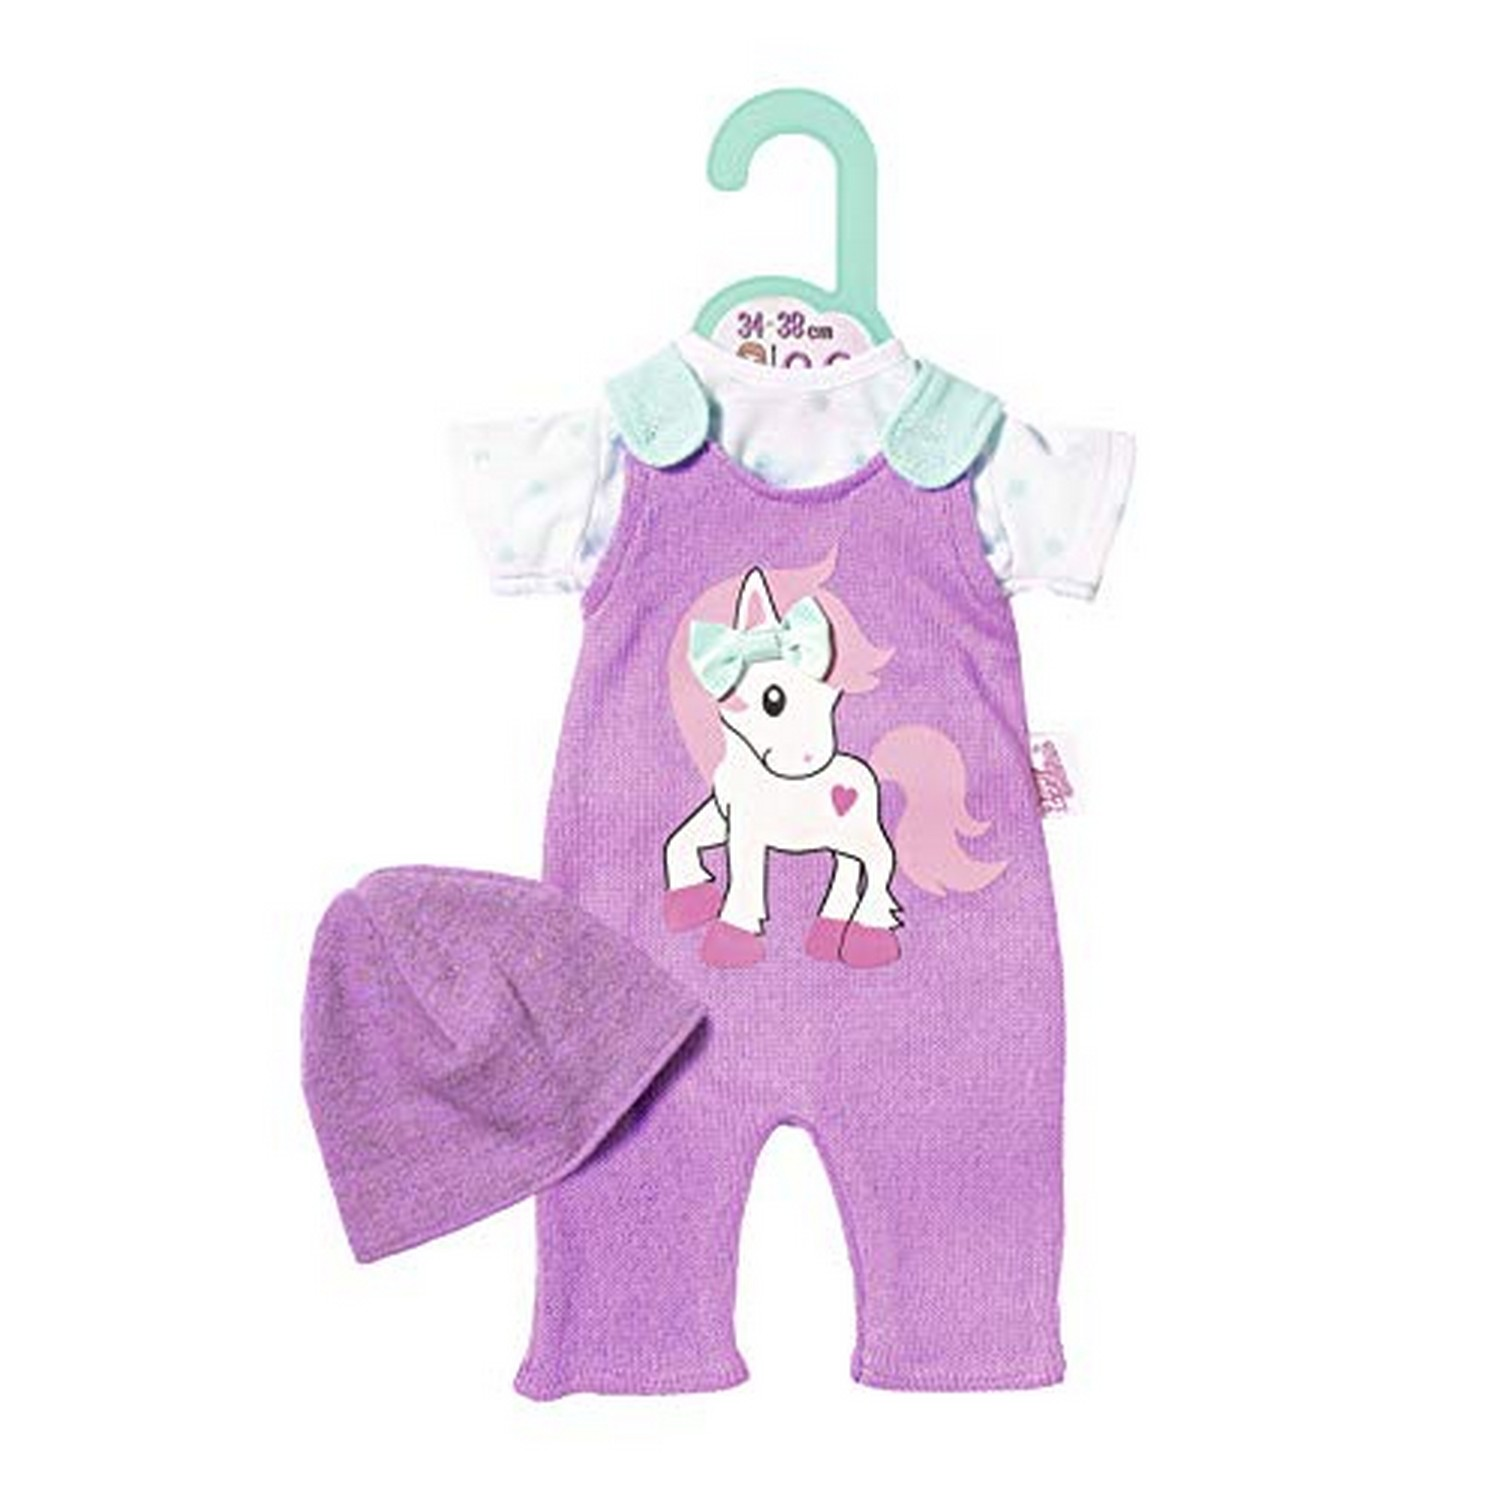 Zapf Creation 870570 Einhorn Strampler Dolly Moda 34-38 cm